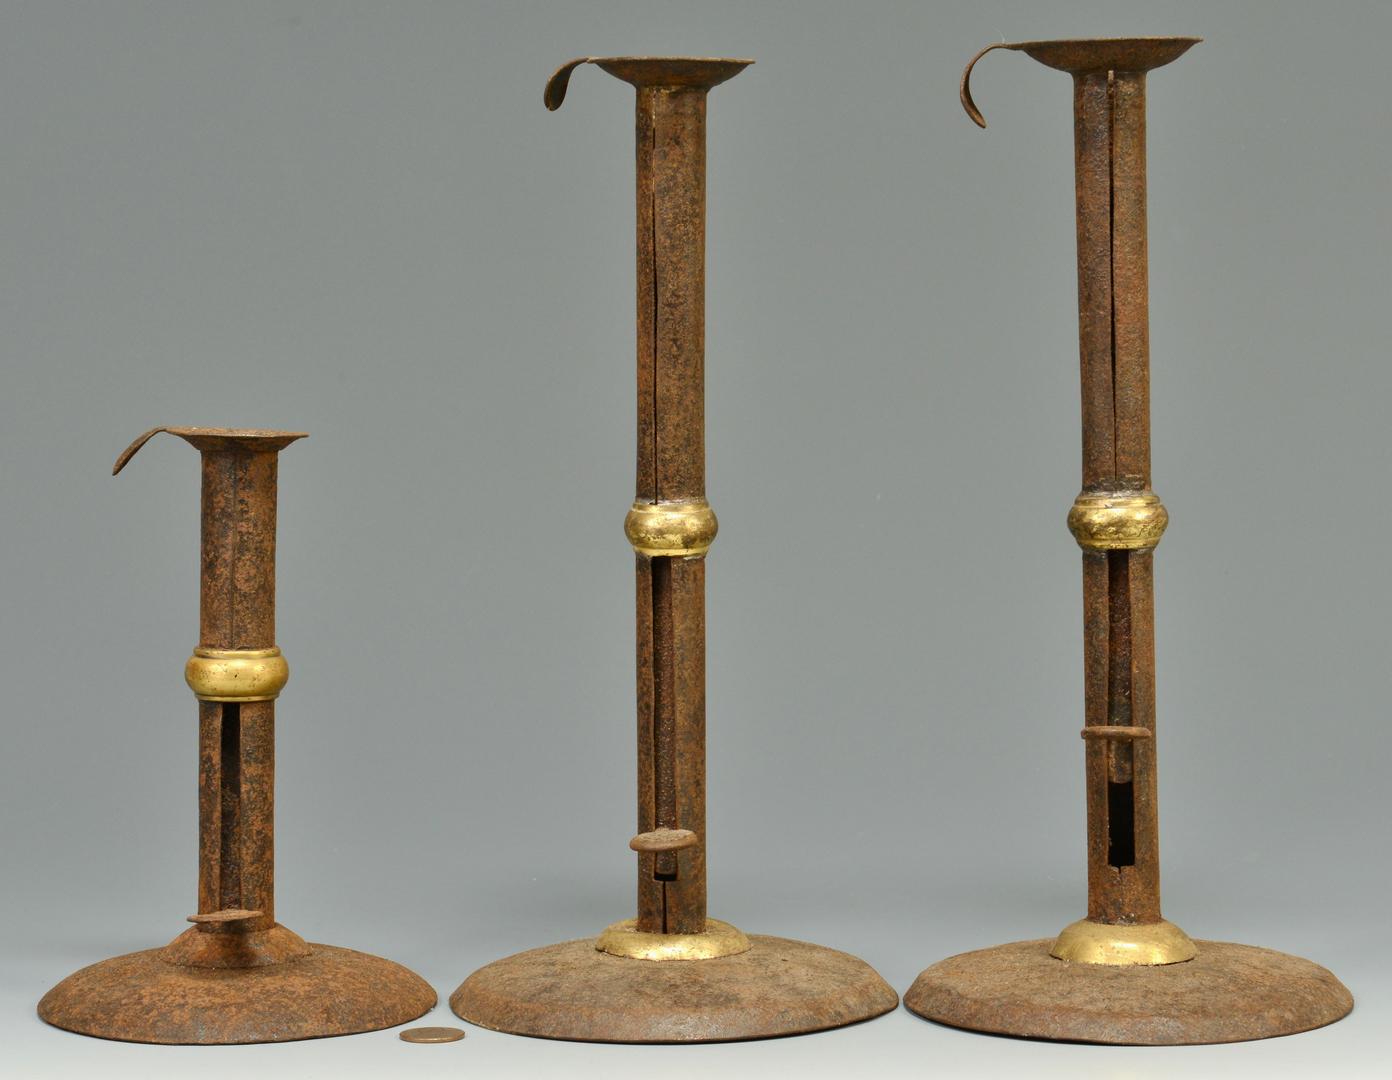 Lot 3088116: 3 Brass Wedding Band Hogscraper Candlesticks